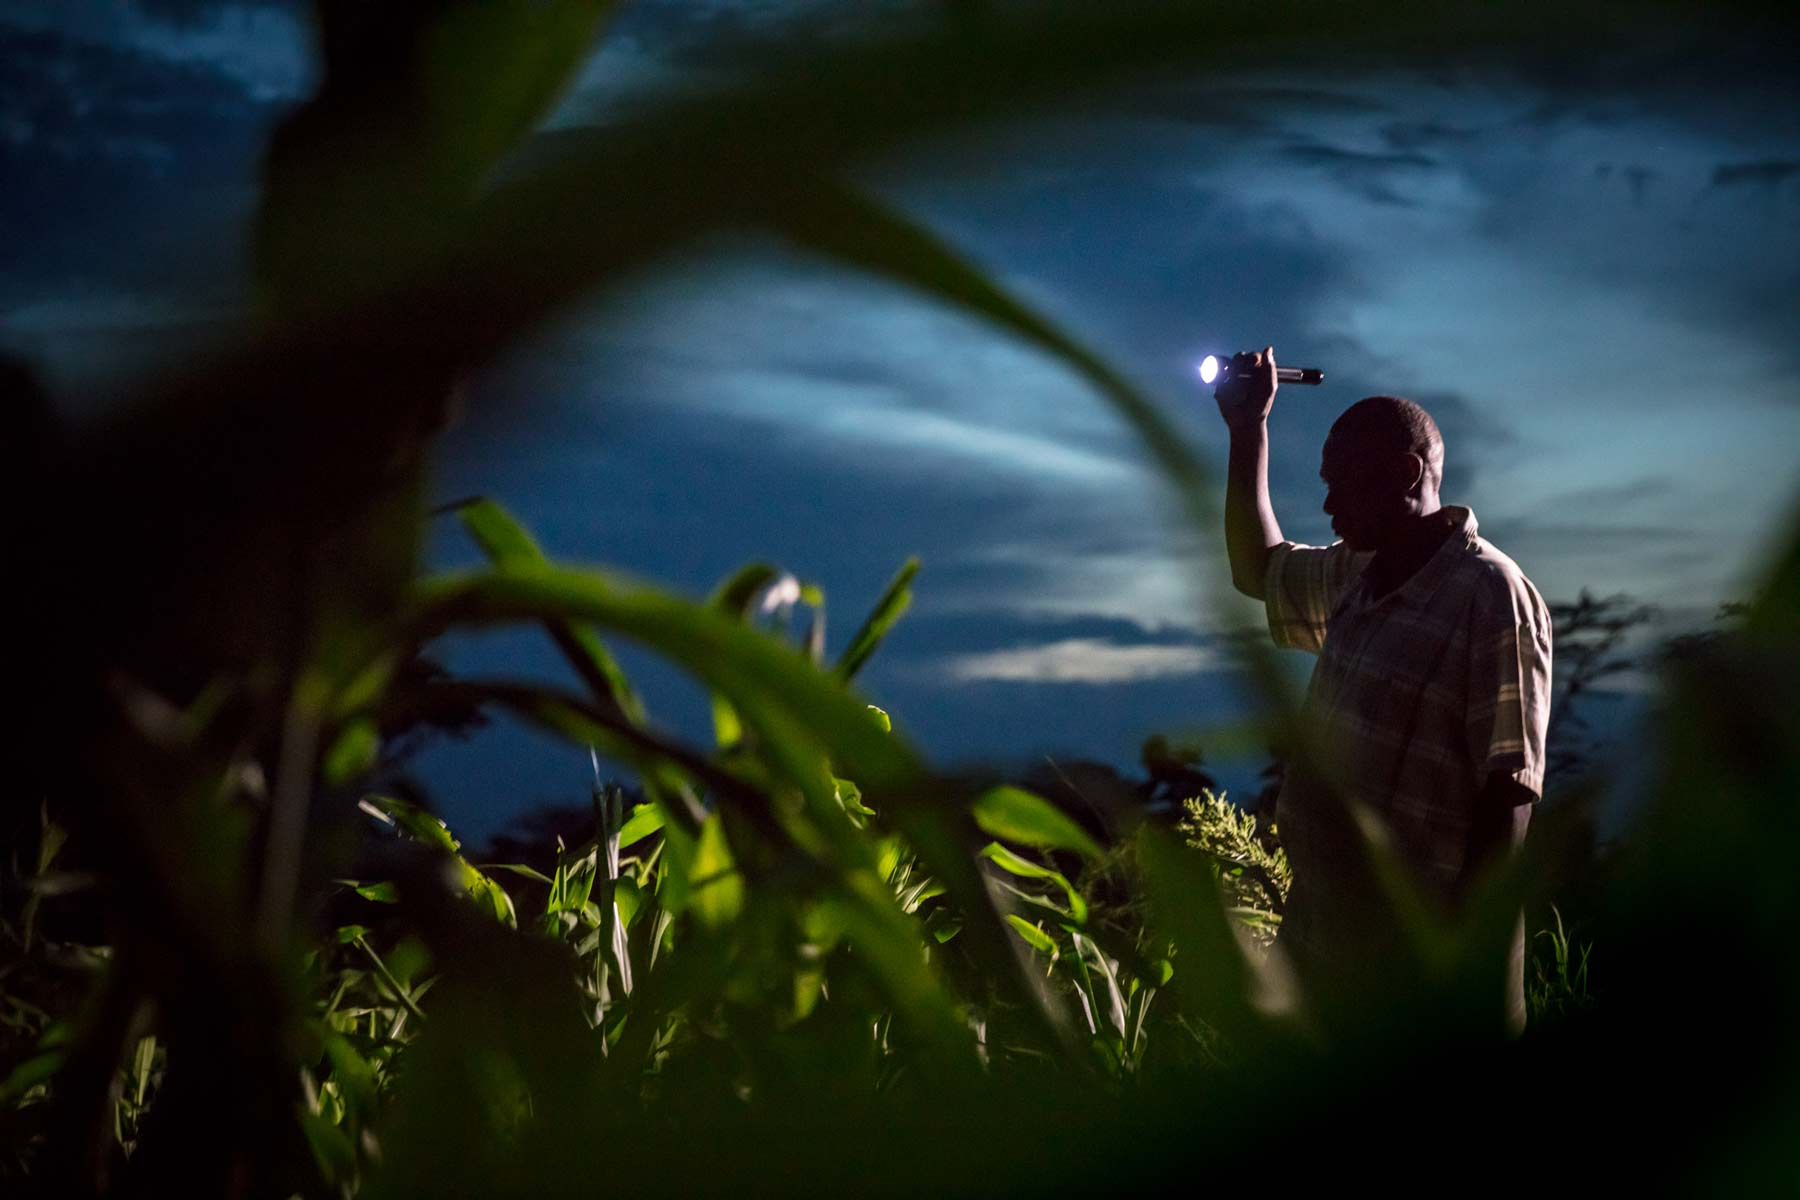 A farmer from a local village in the Grumeti Concession checks his crops at night. Crop raiding by elephants is a common occurrence in the Reserve and can severely impact local farmers who often lose a full year's crops in one crop-raiding incident, which is heartbreaking for the famer and his family who are dependent on their crops for their survival.